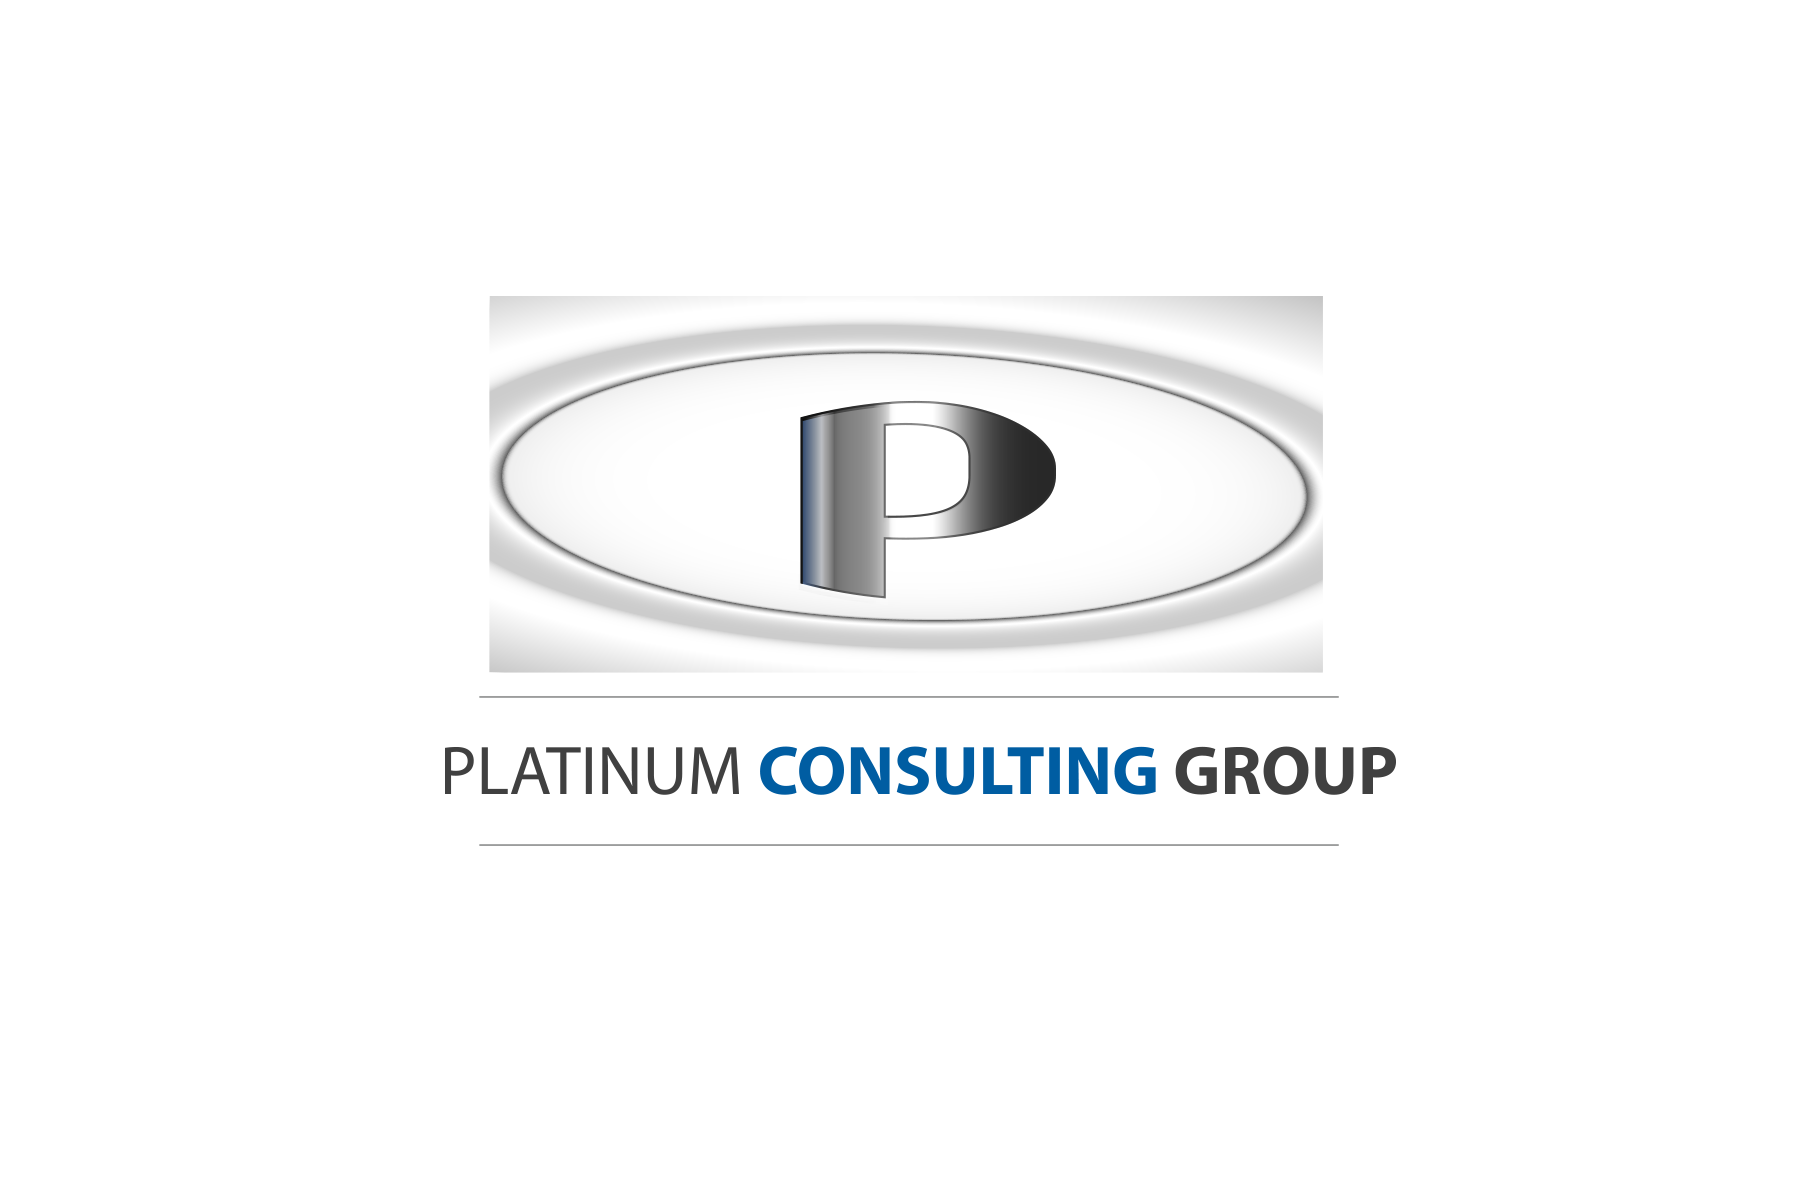 Logo Design by Rozsa Matyas - Entry No. 70 in the Logo Design Contest Captivating Logo Design for Platinum Consulting Group.